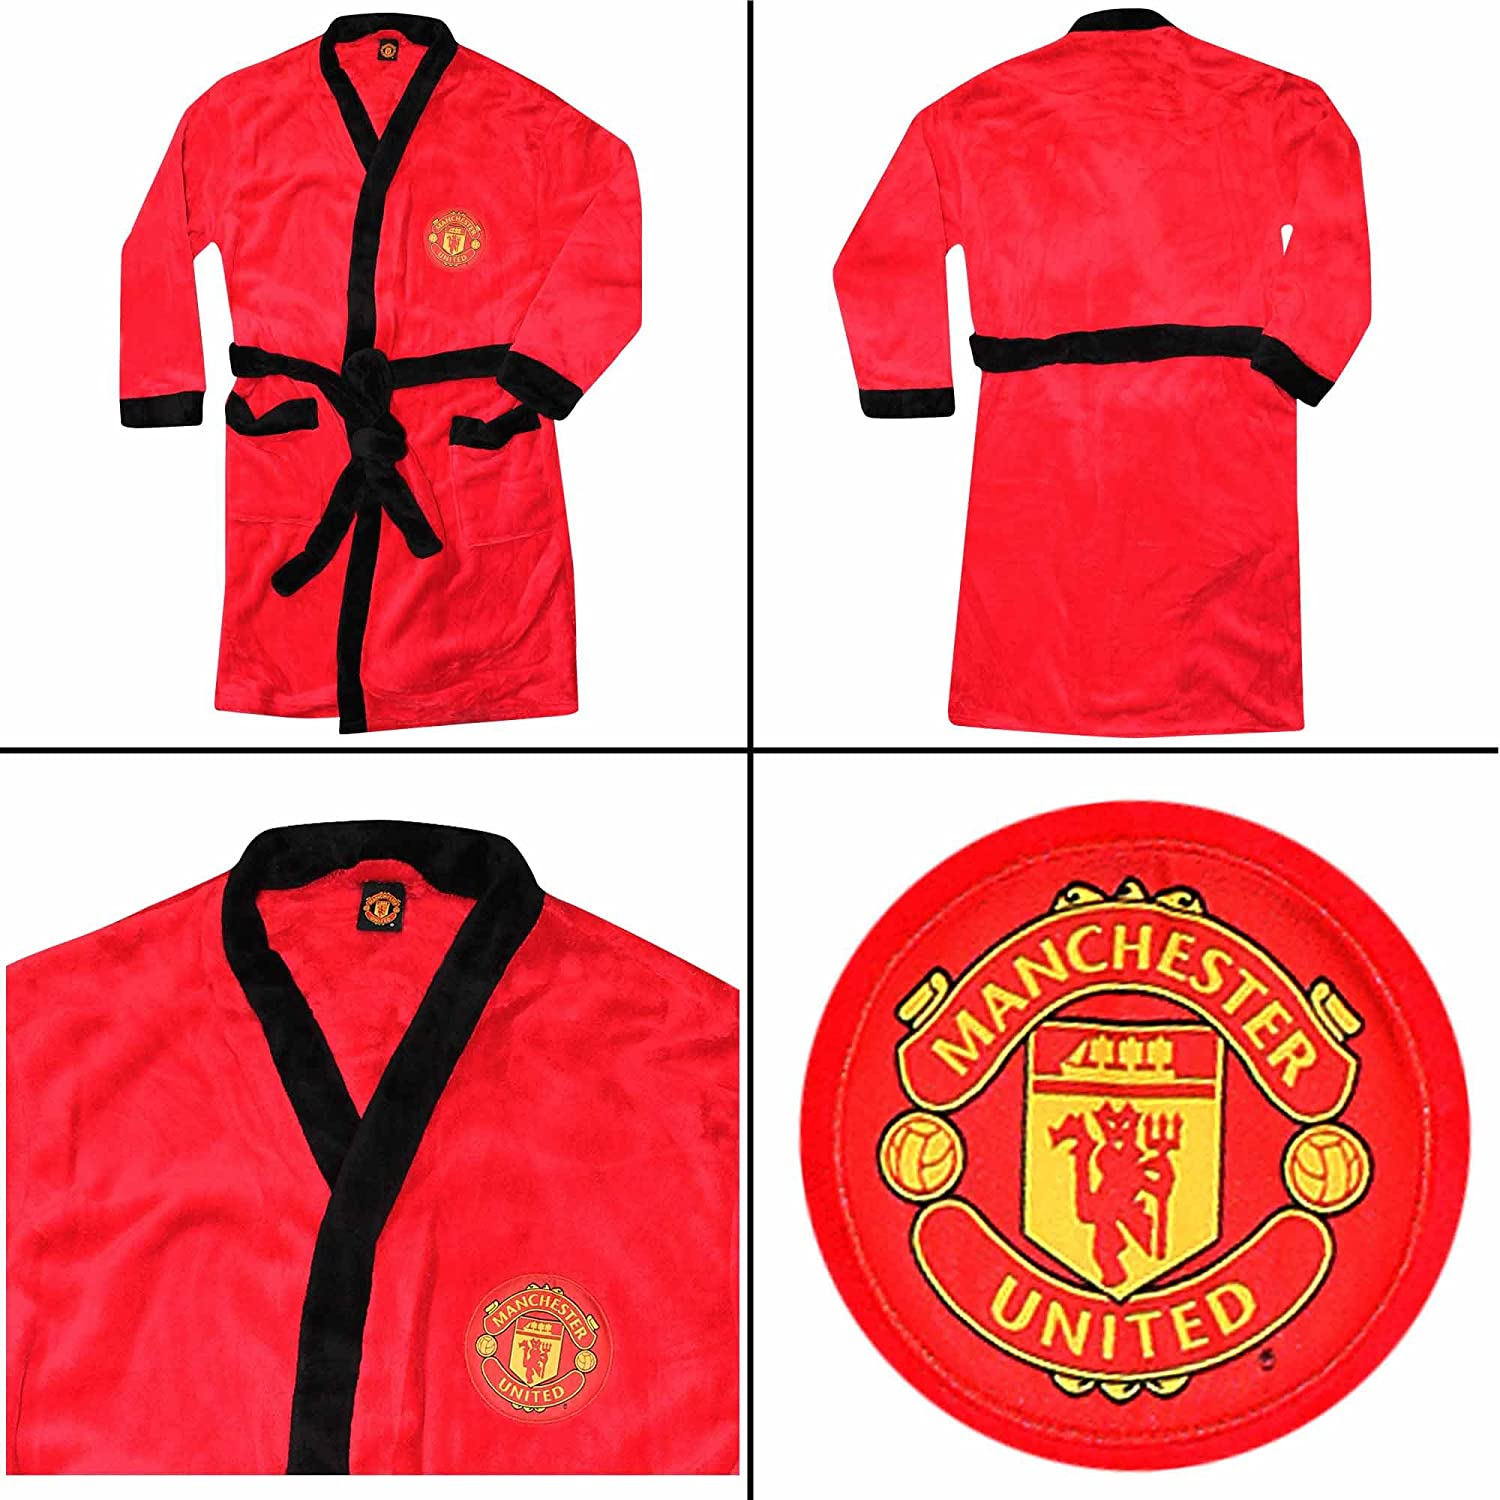 Red Devils Unisex Manchester United Adults Dressing Gown 100/% Polyester Fleece